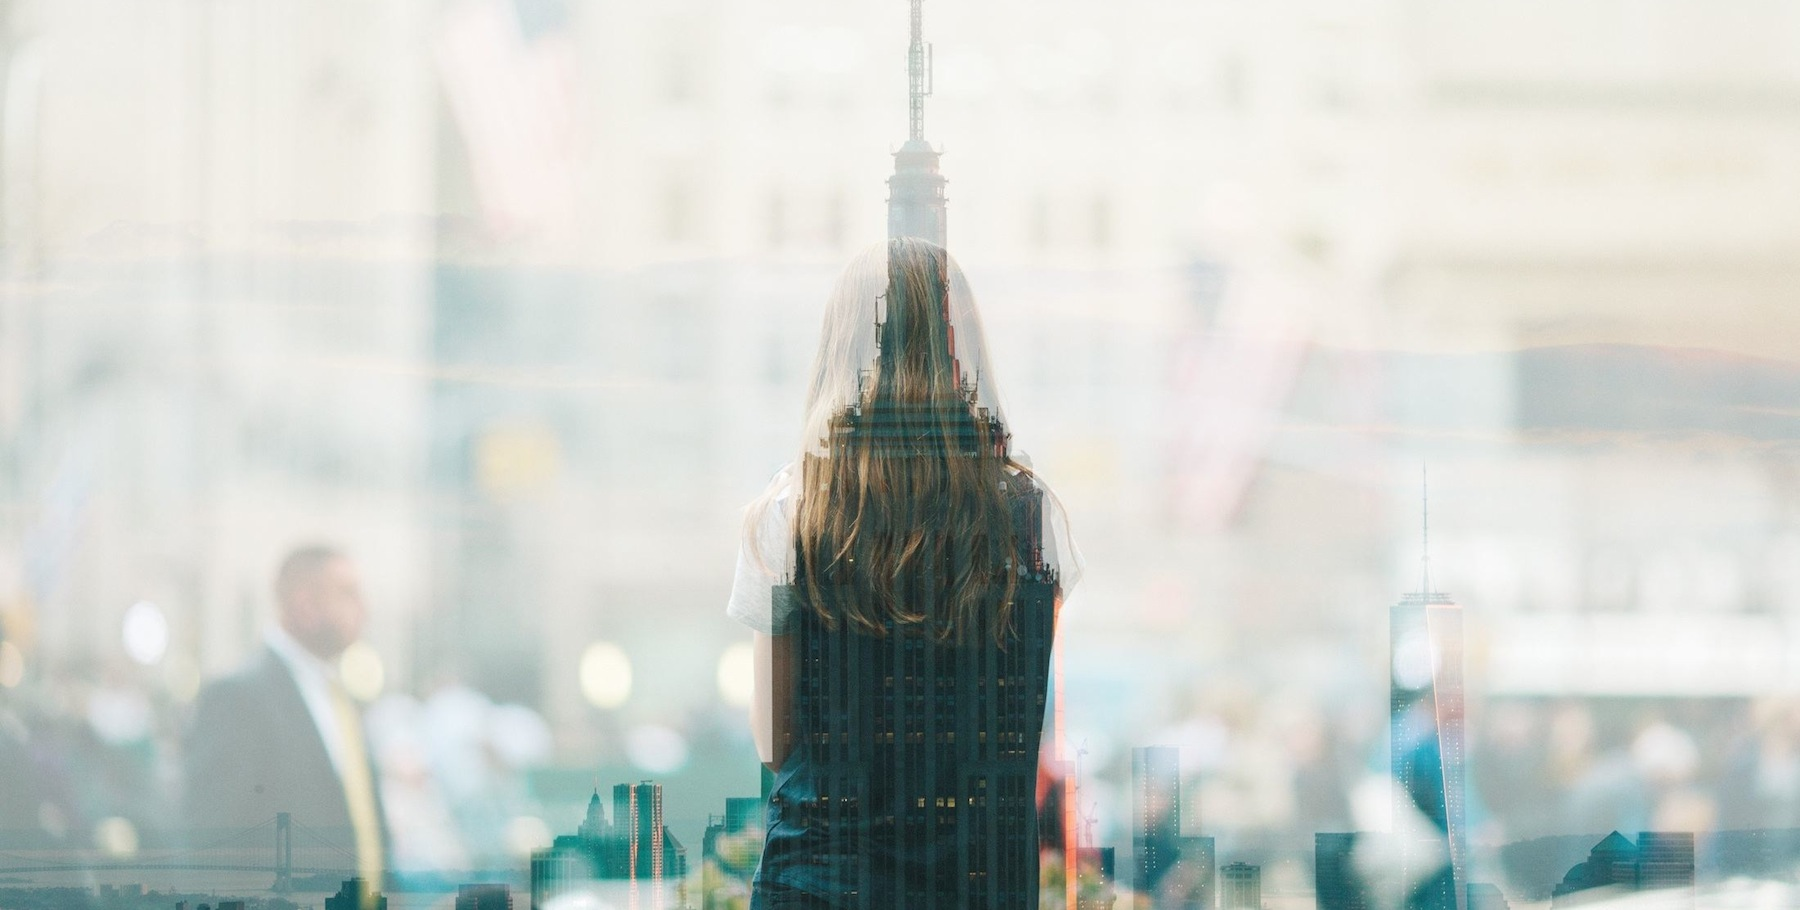 woman_empire state building